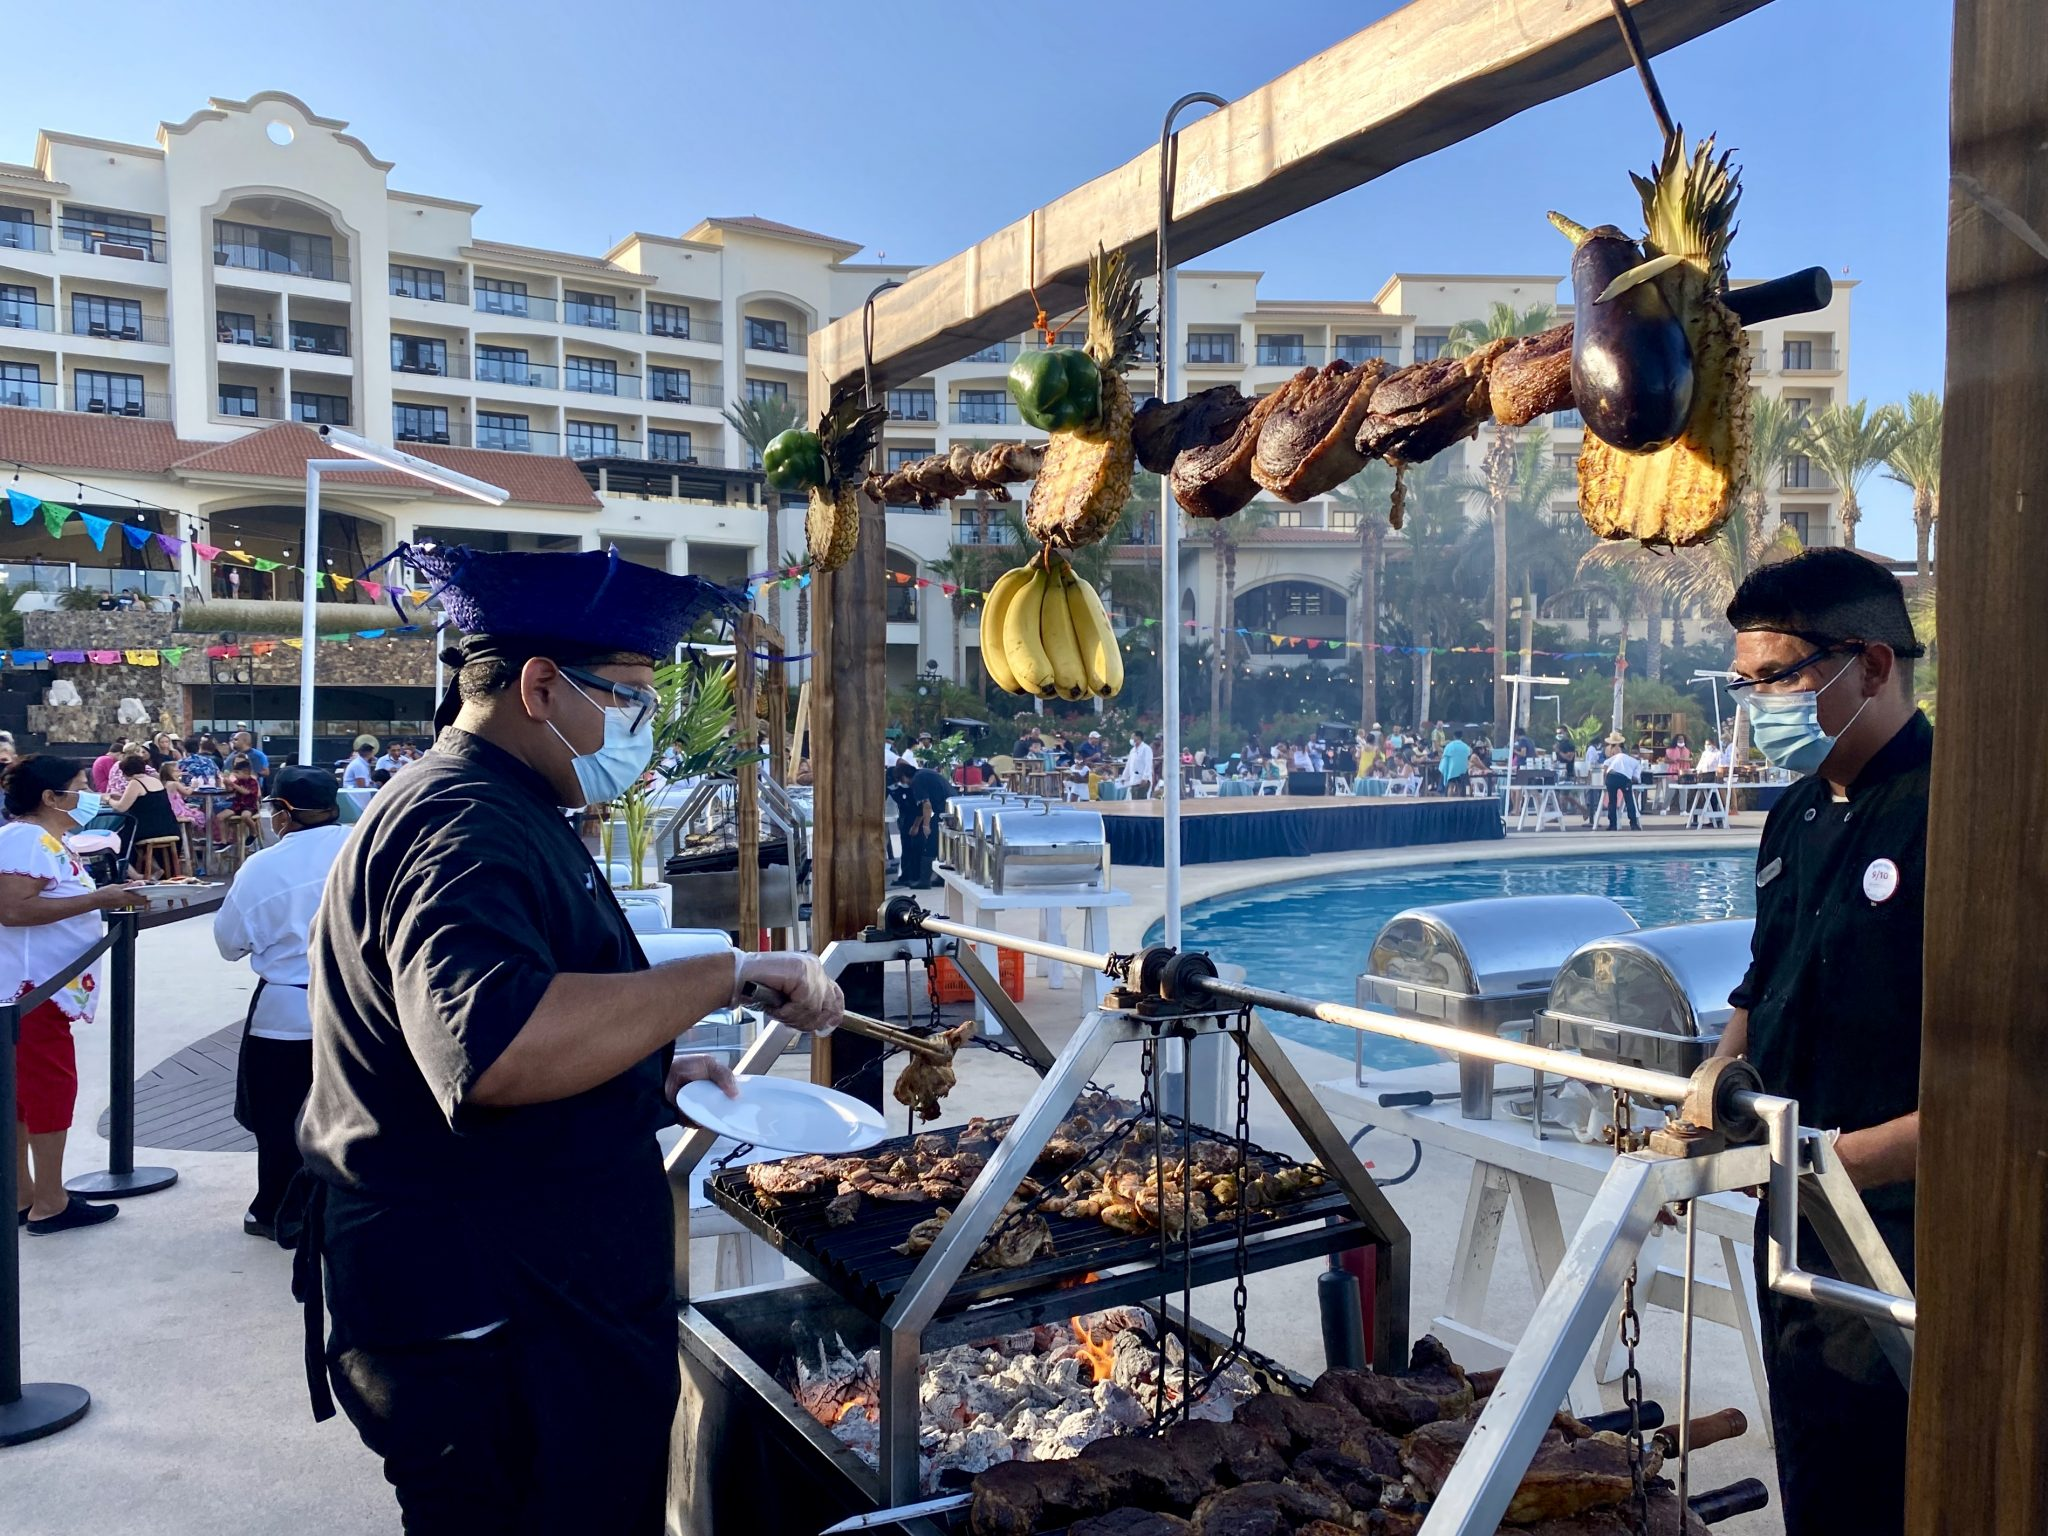 Chefs in masks cooking meats over a hot grill at the Hyatt Riva Resort in Los Cabos, Mexico